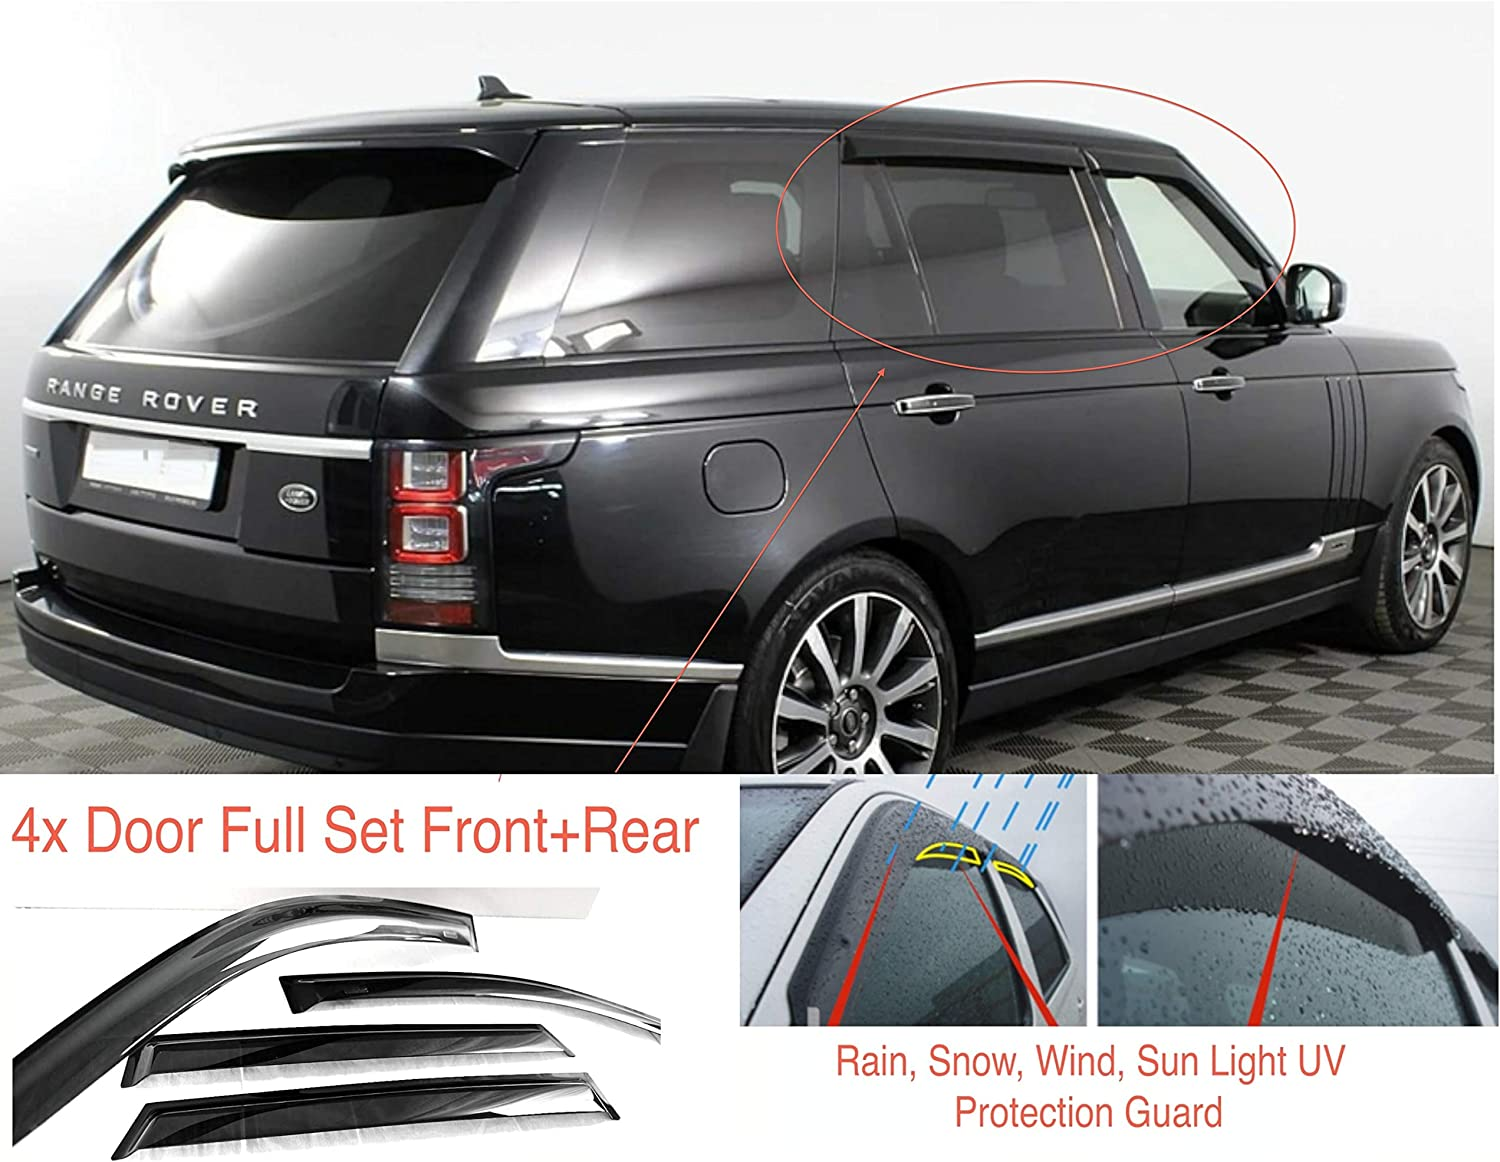 Ac Wow 4 Wind Deflectors Compatible With Range Rover L405 5 Door 2012 2013 2014 2015 2016 2017 2018 2019 2020 And New Acrylic Weather Protection Visors Auto